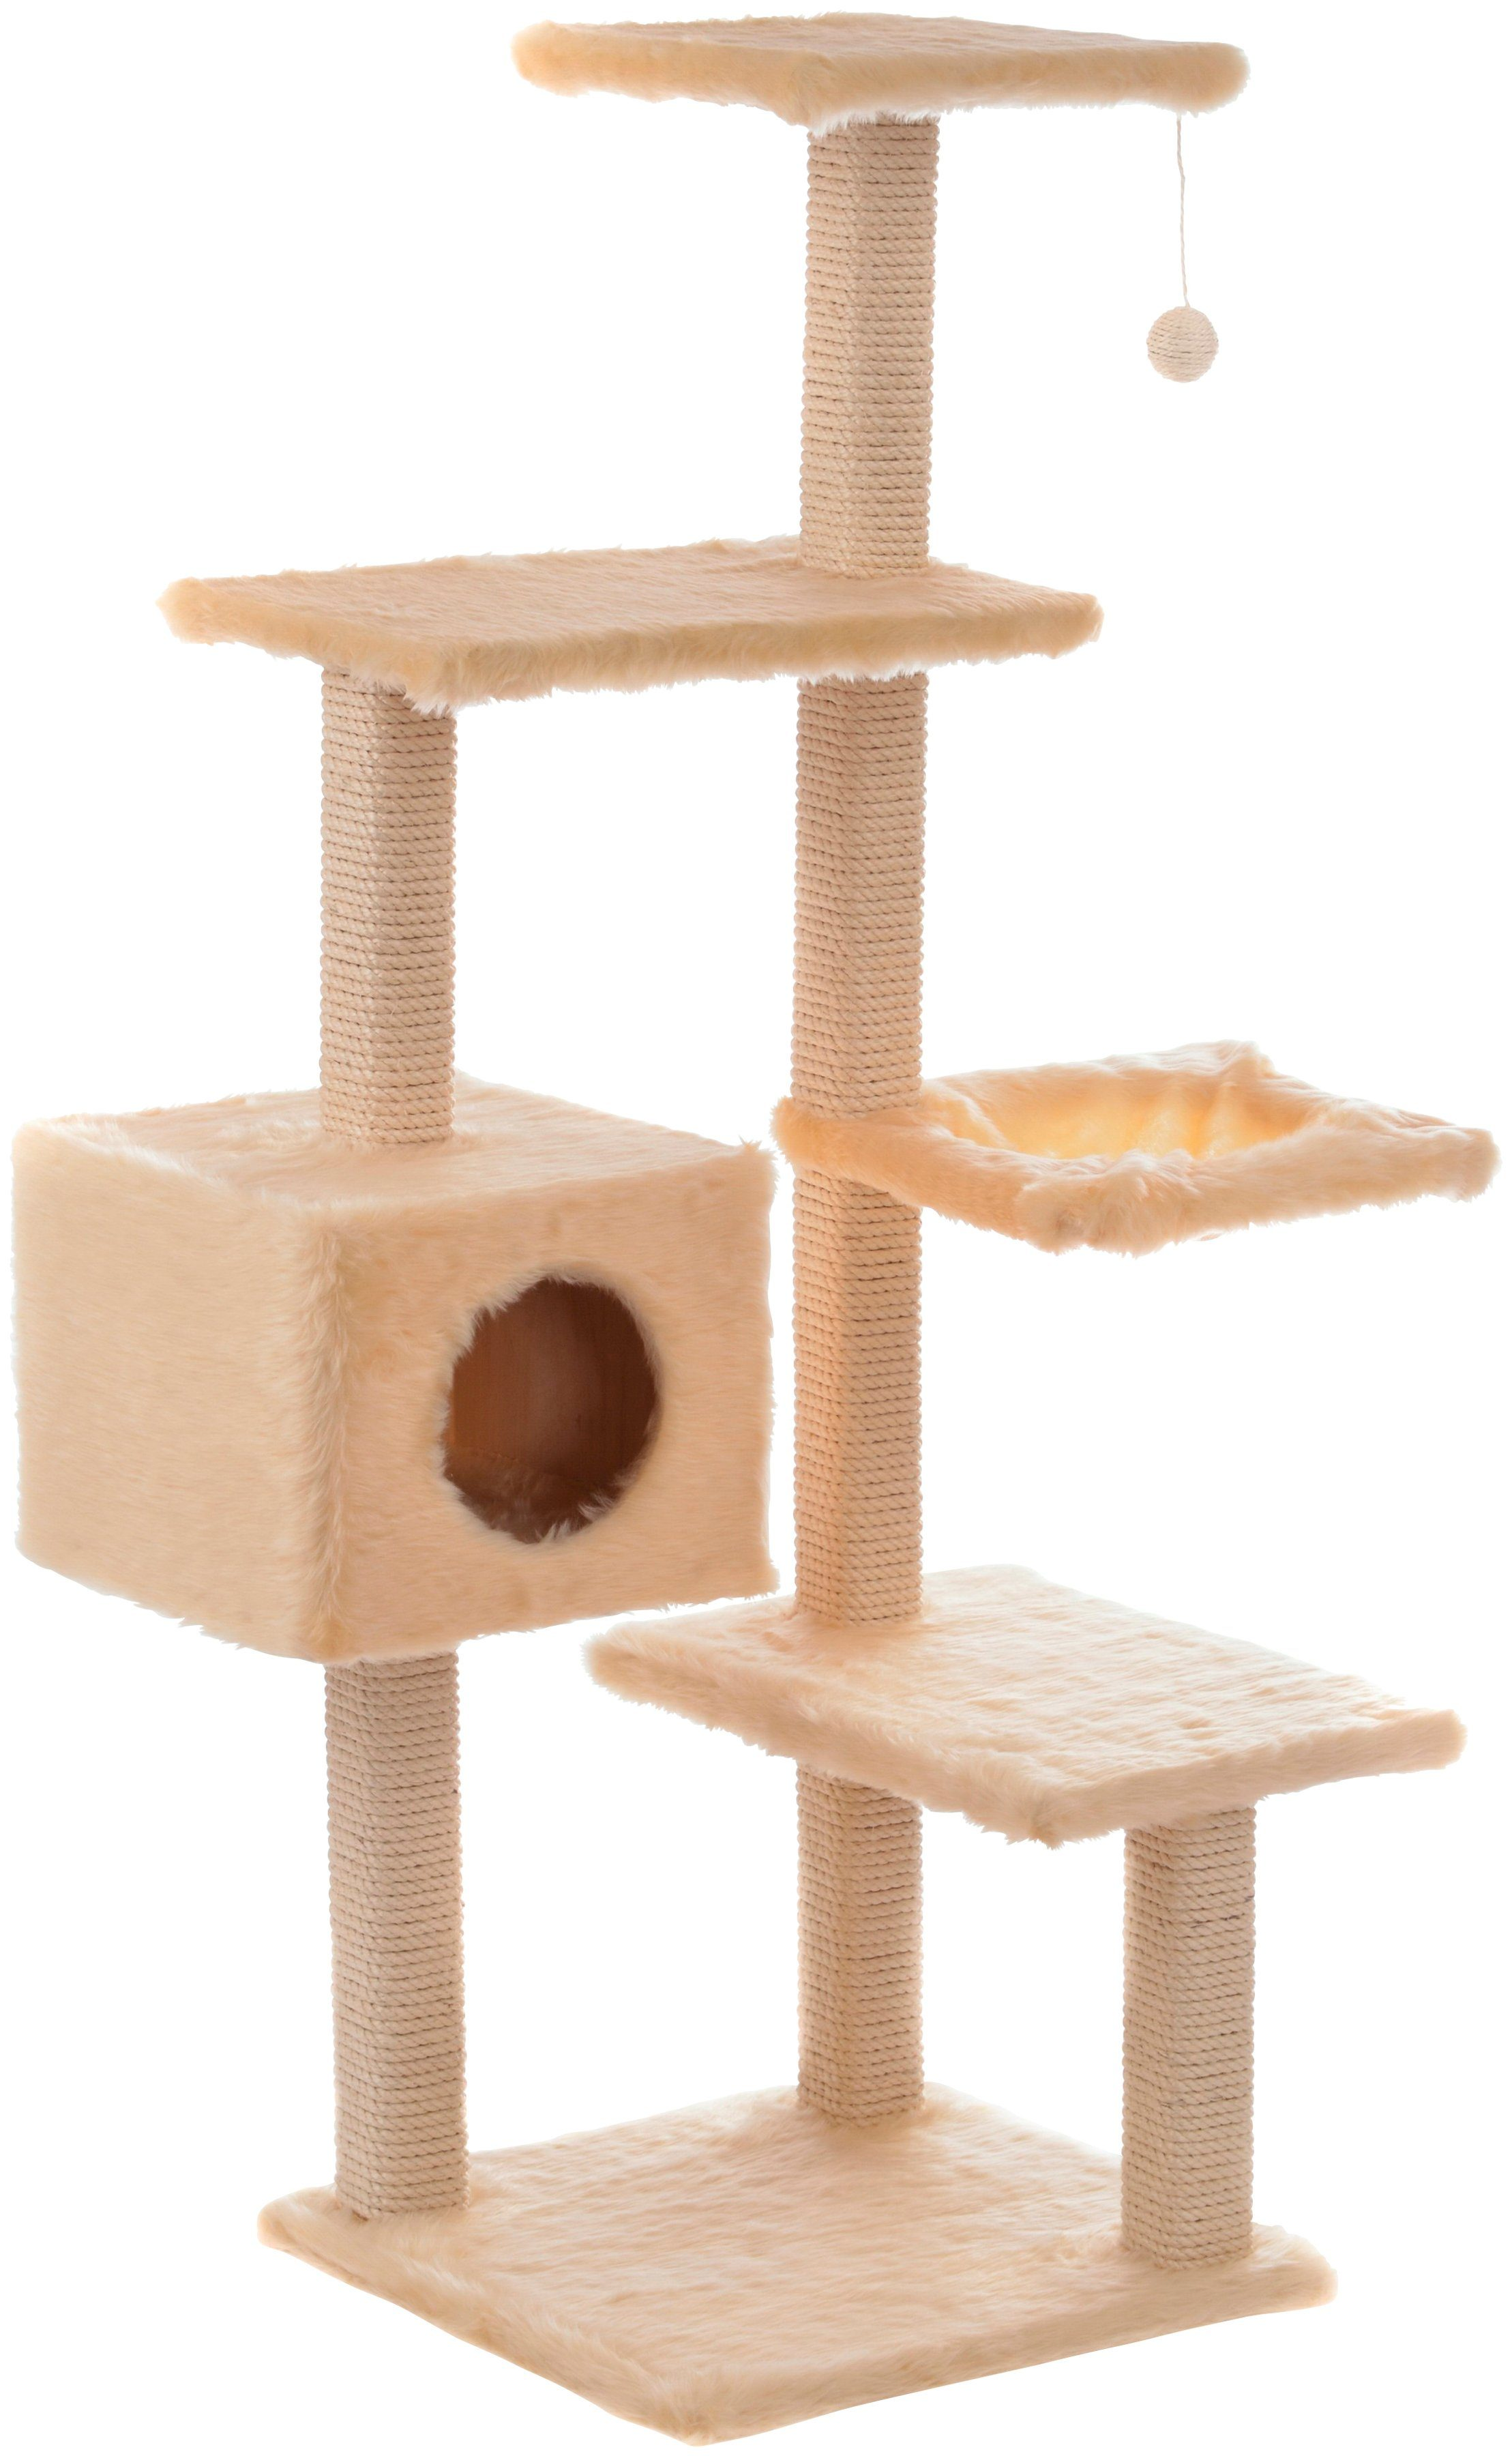 CAT DREAM Kratzbaum »Stufen-Kratzboy«, B/T/H: 70/45/130 cm, beige